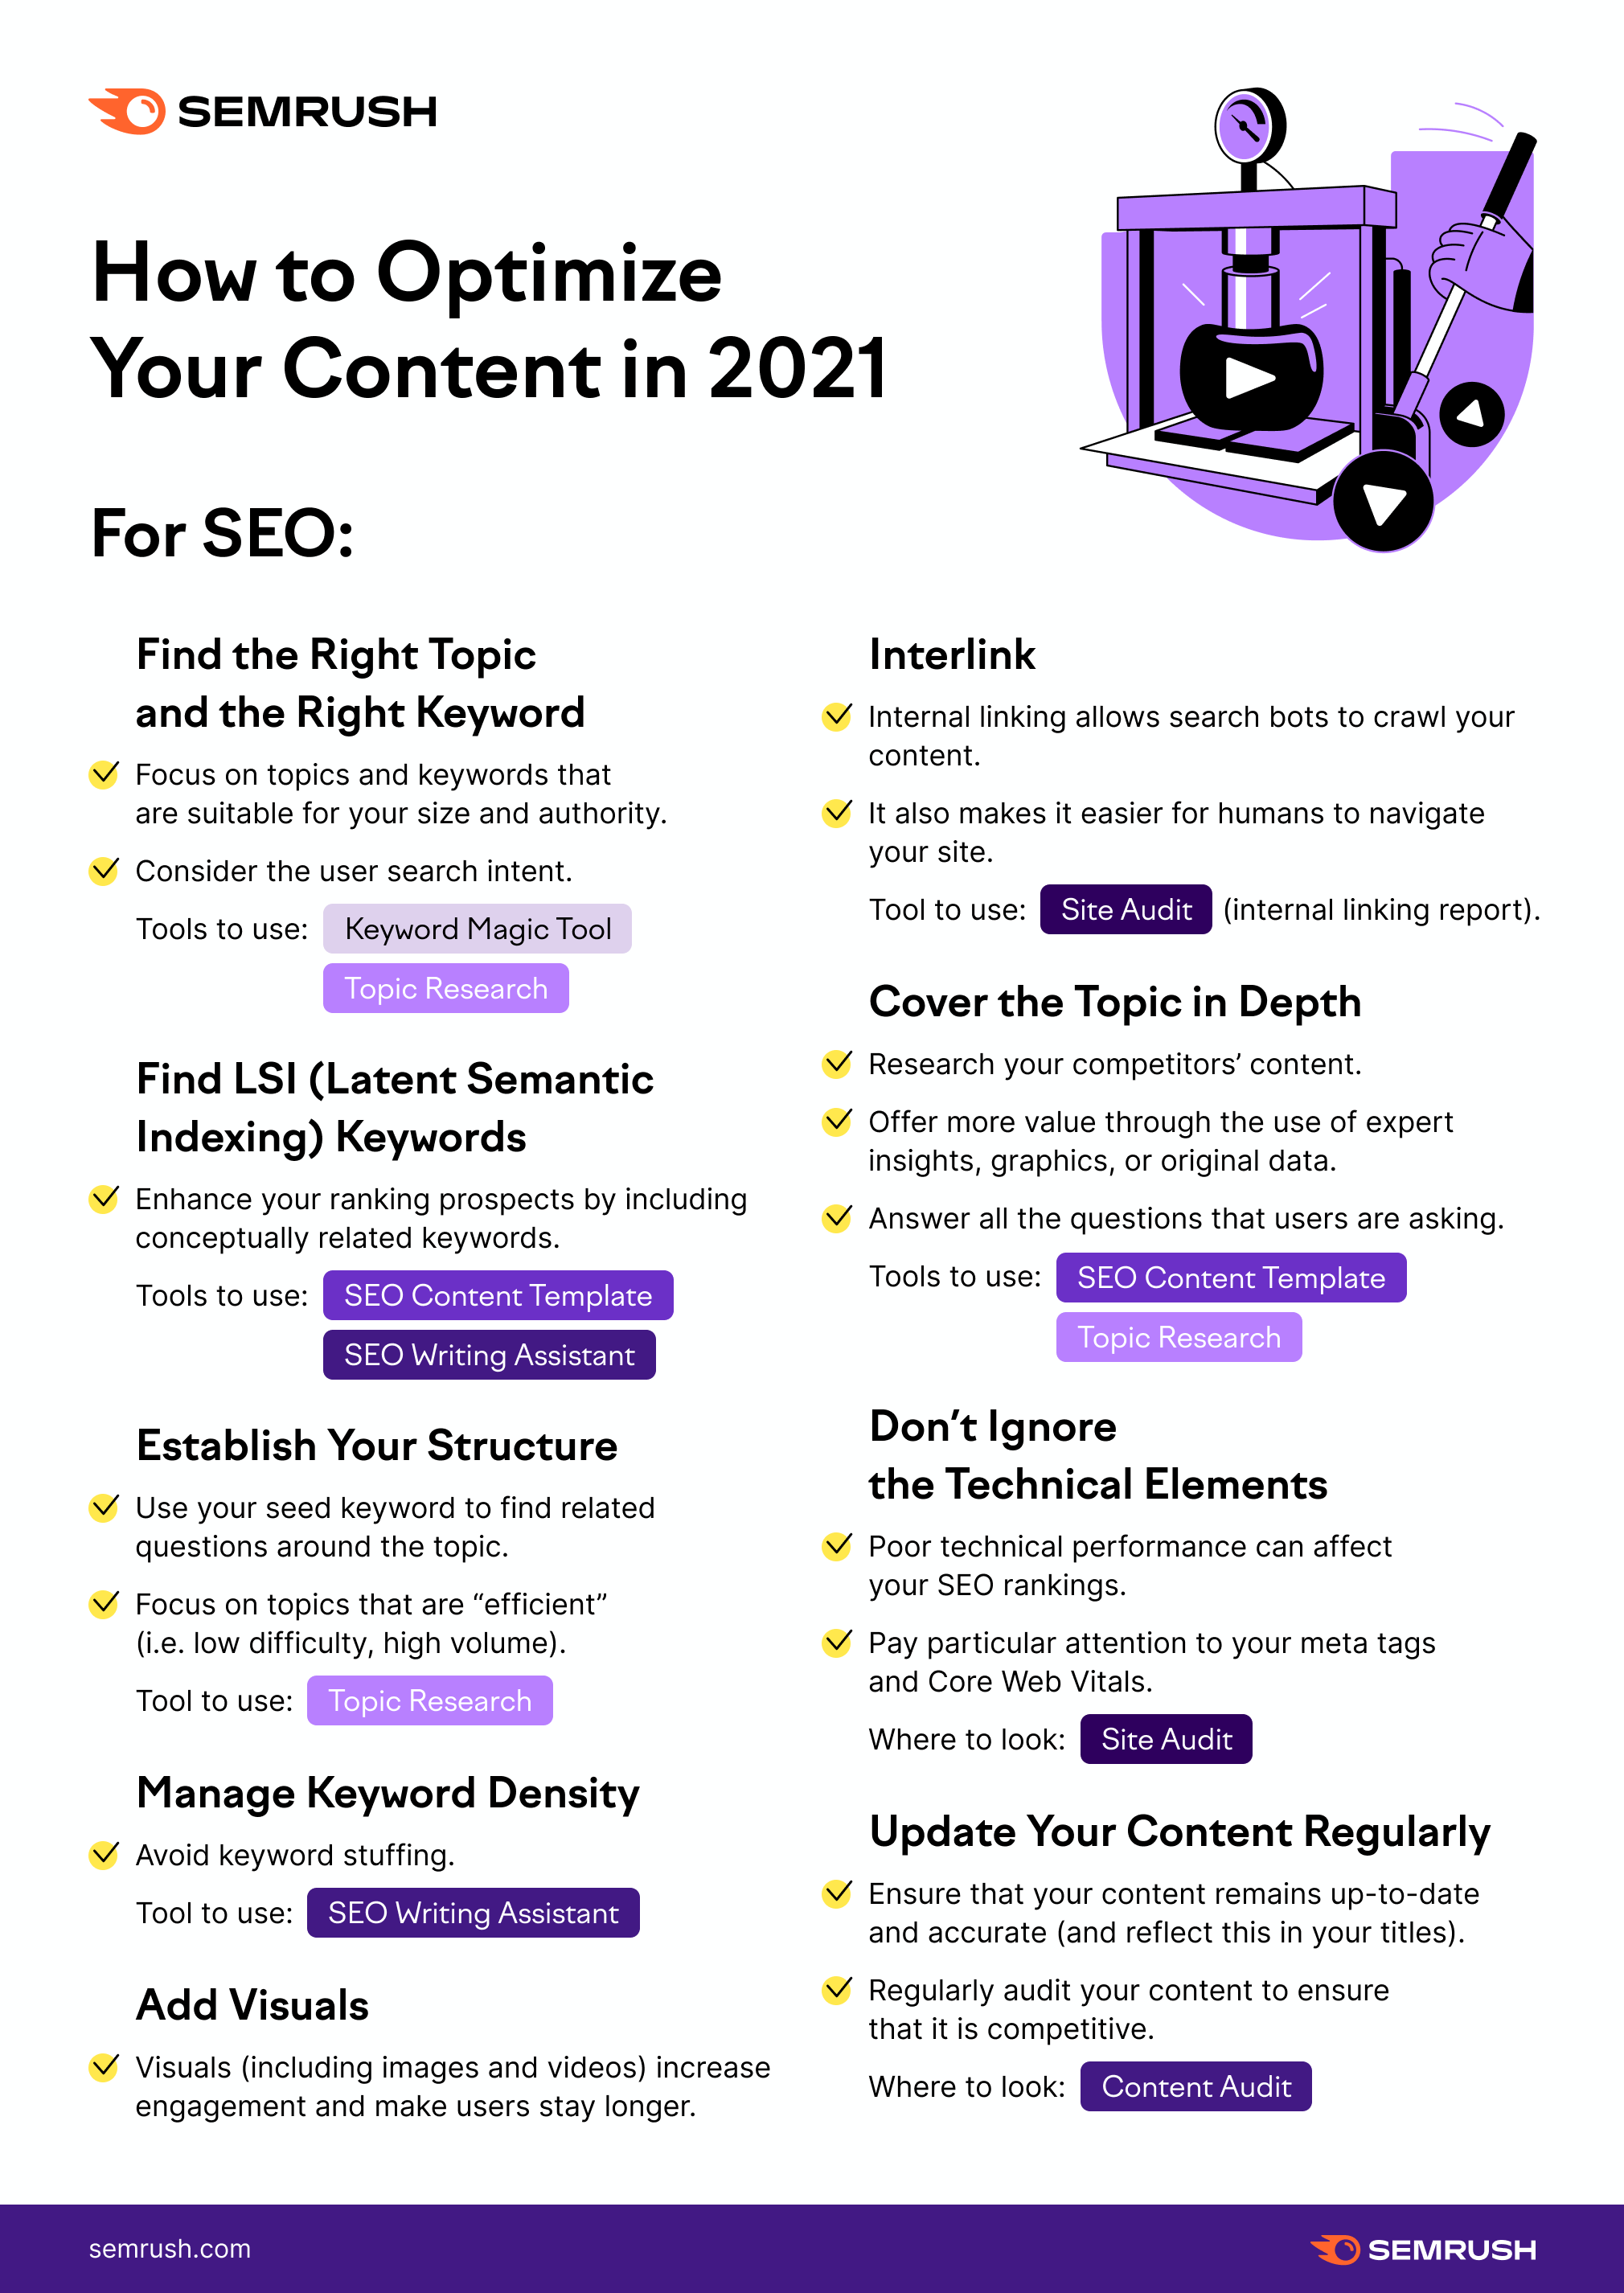 Infographic: content optimization - optimizing content for SEO